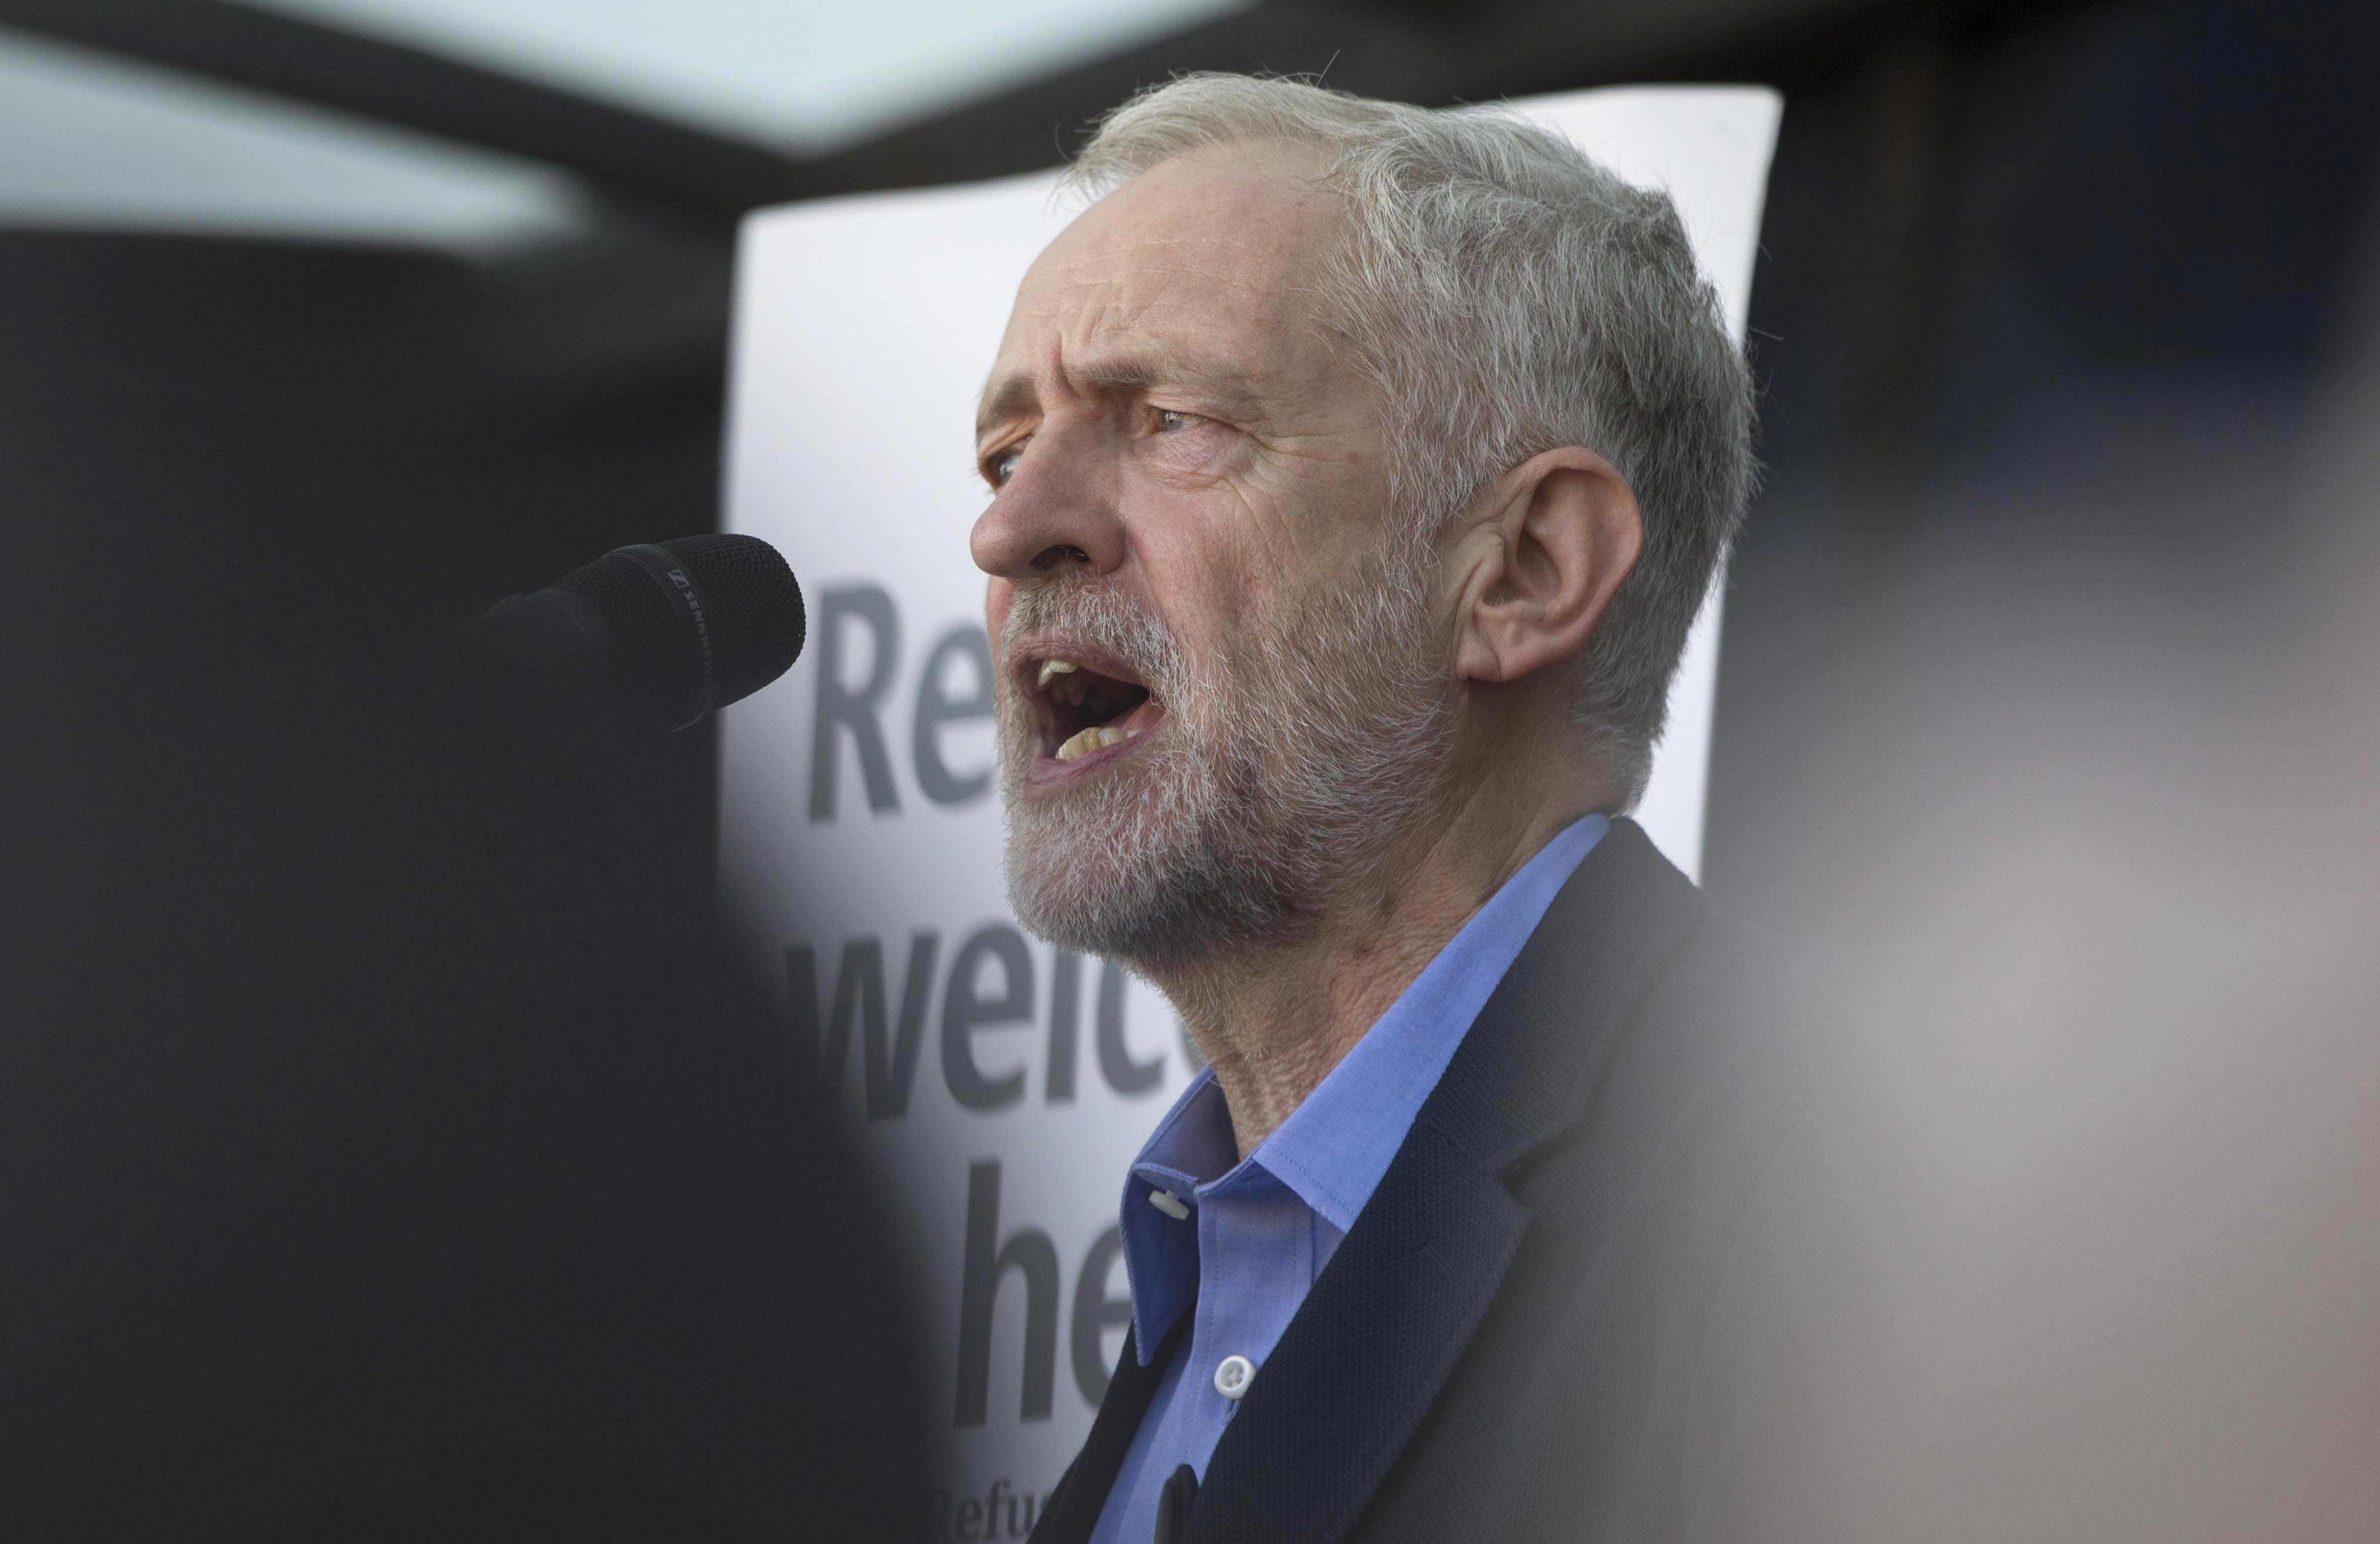 Jeremy Corbyn, the new leader of Britain's opposition Labour Party speaks at a pro-refugee demonstration in London, on Sept. 12, 2015.